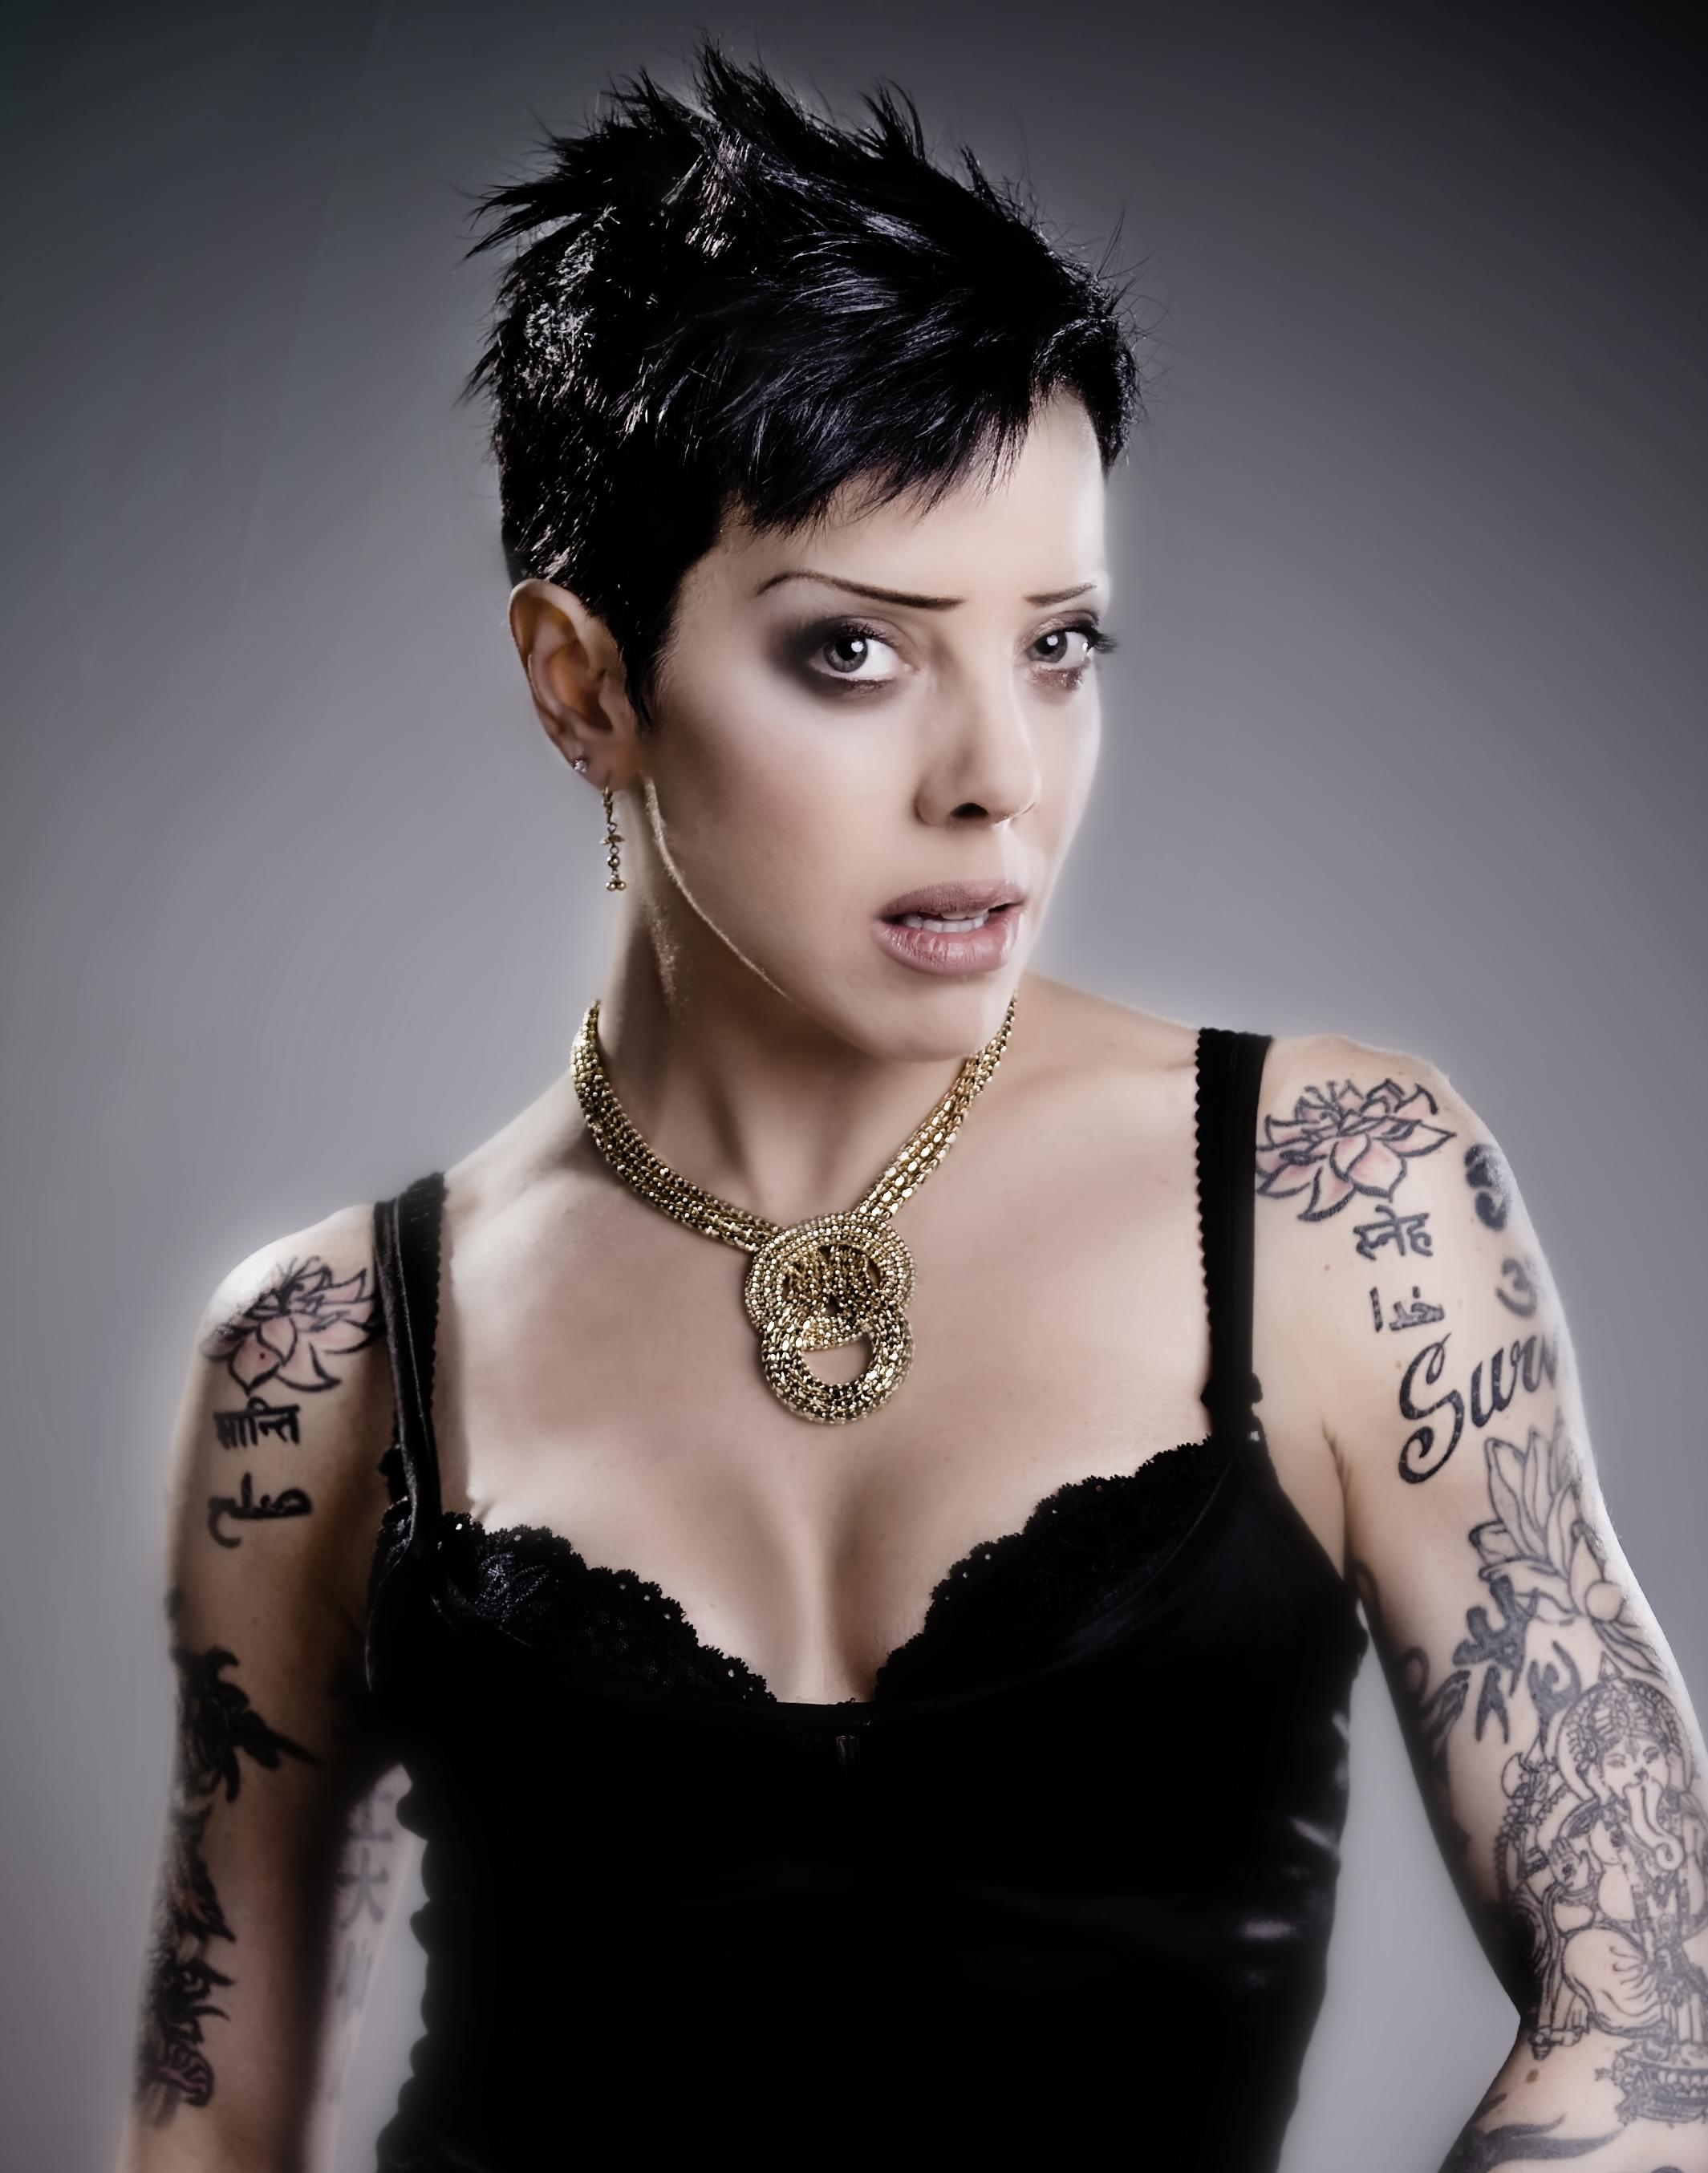 Five Reasons To Come Hear Bif Naked Speak At Ufv  Ufv Today-6636